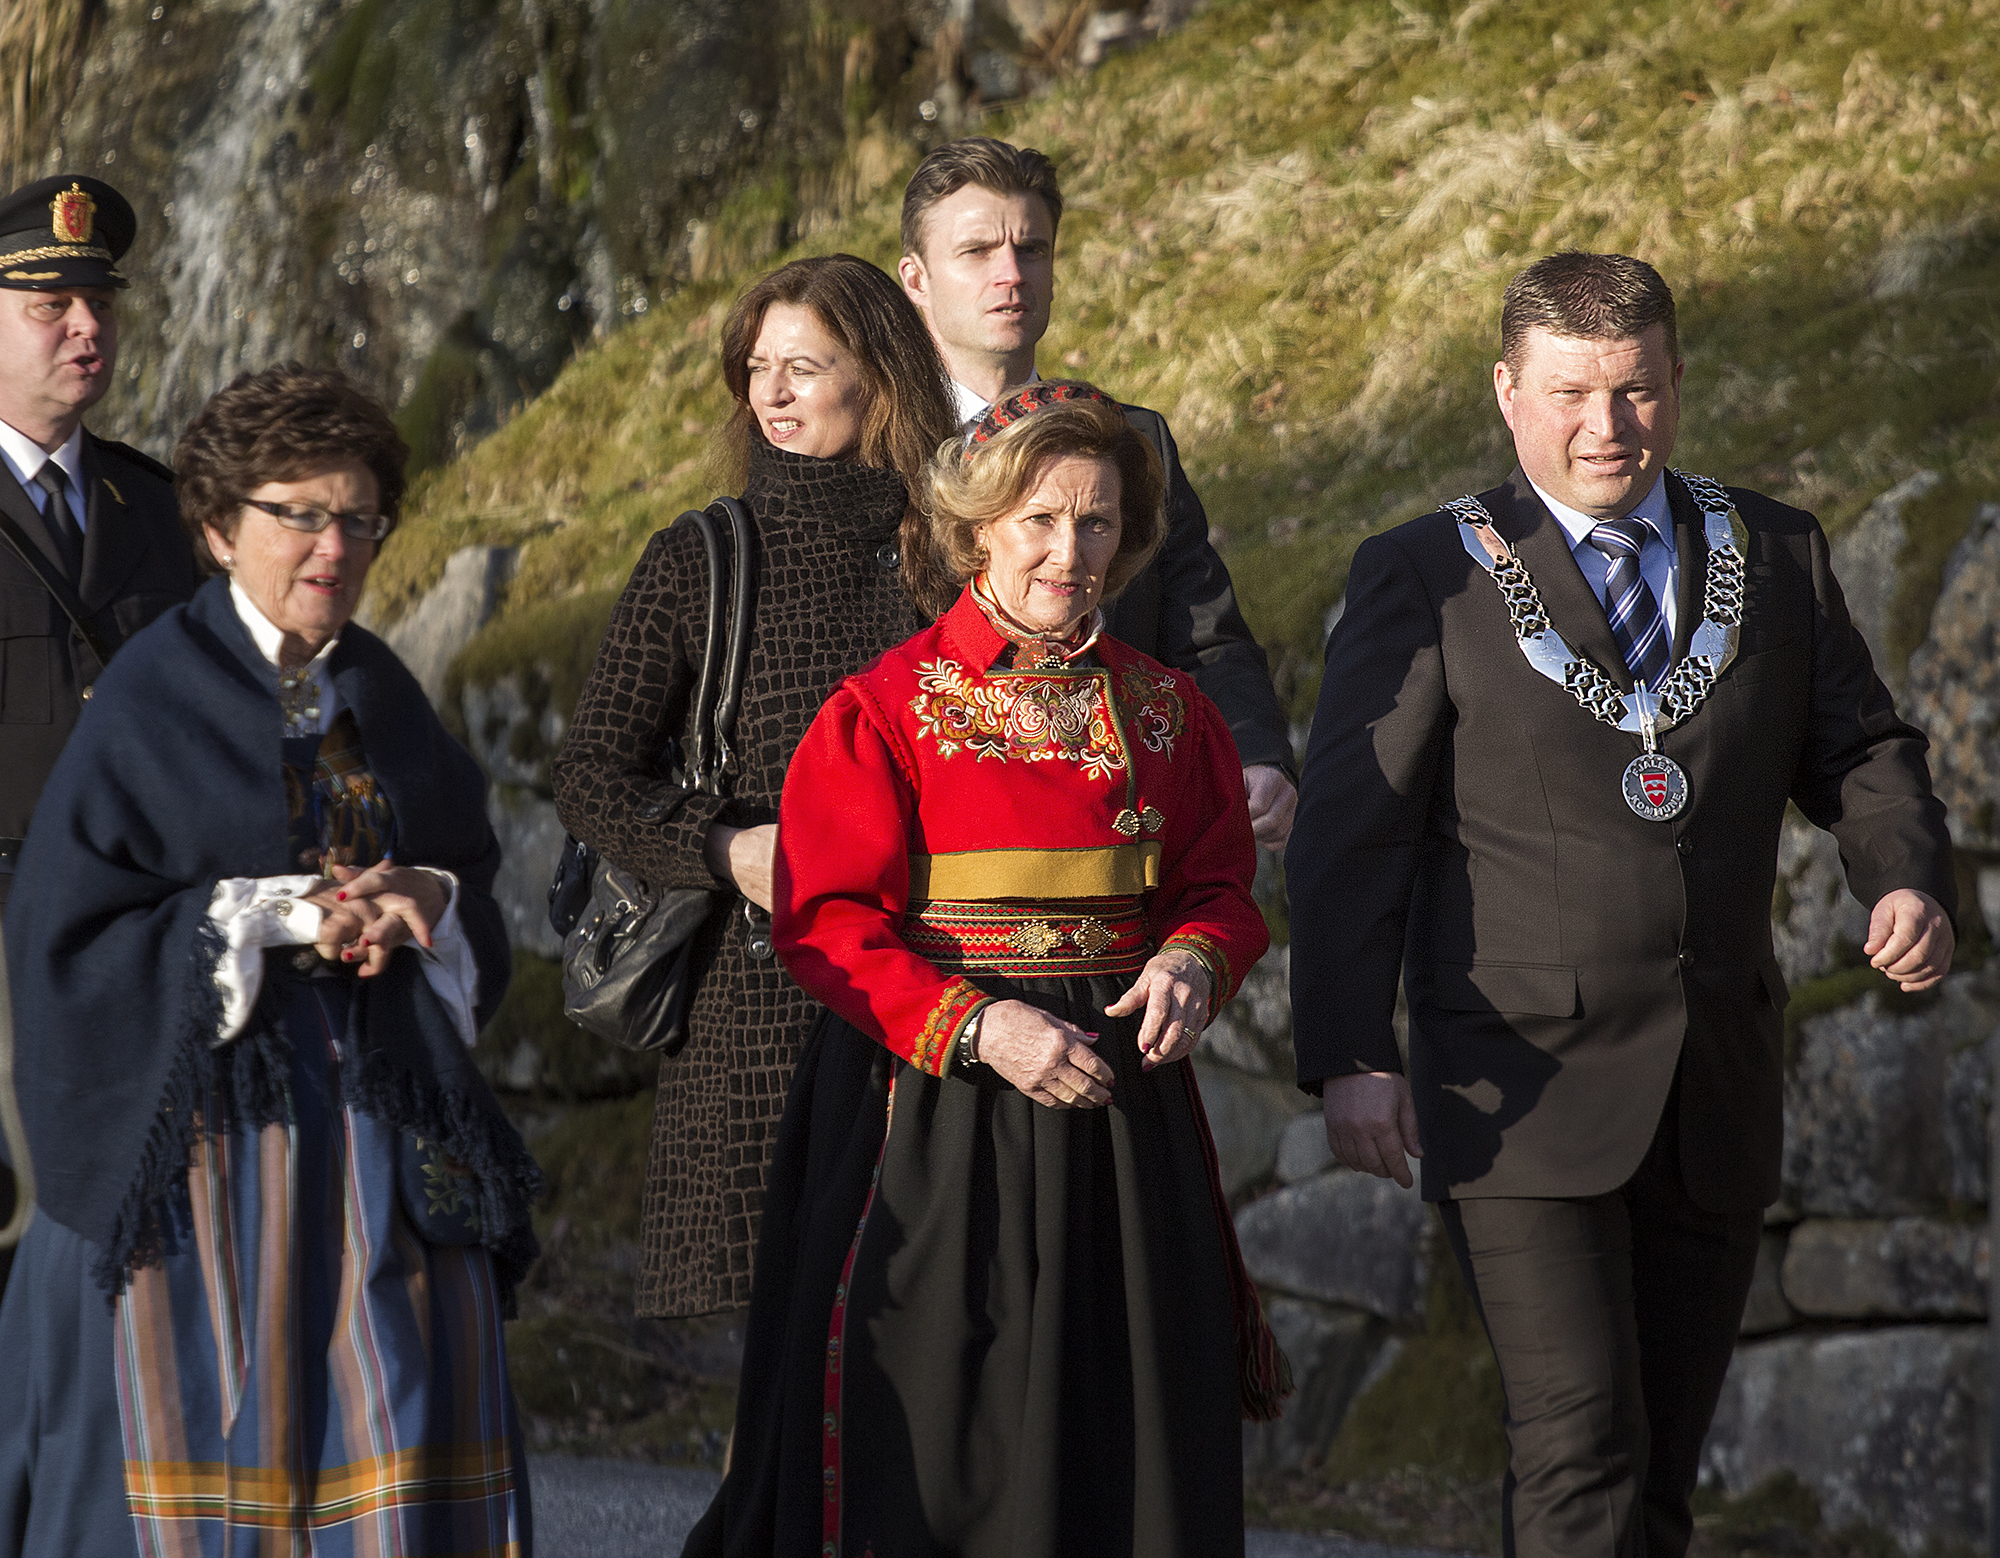 Arve Helle accompanies HM Queen Sonja during her visit to the College in 2014